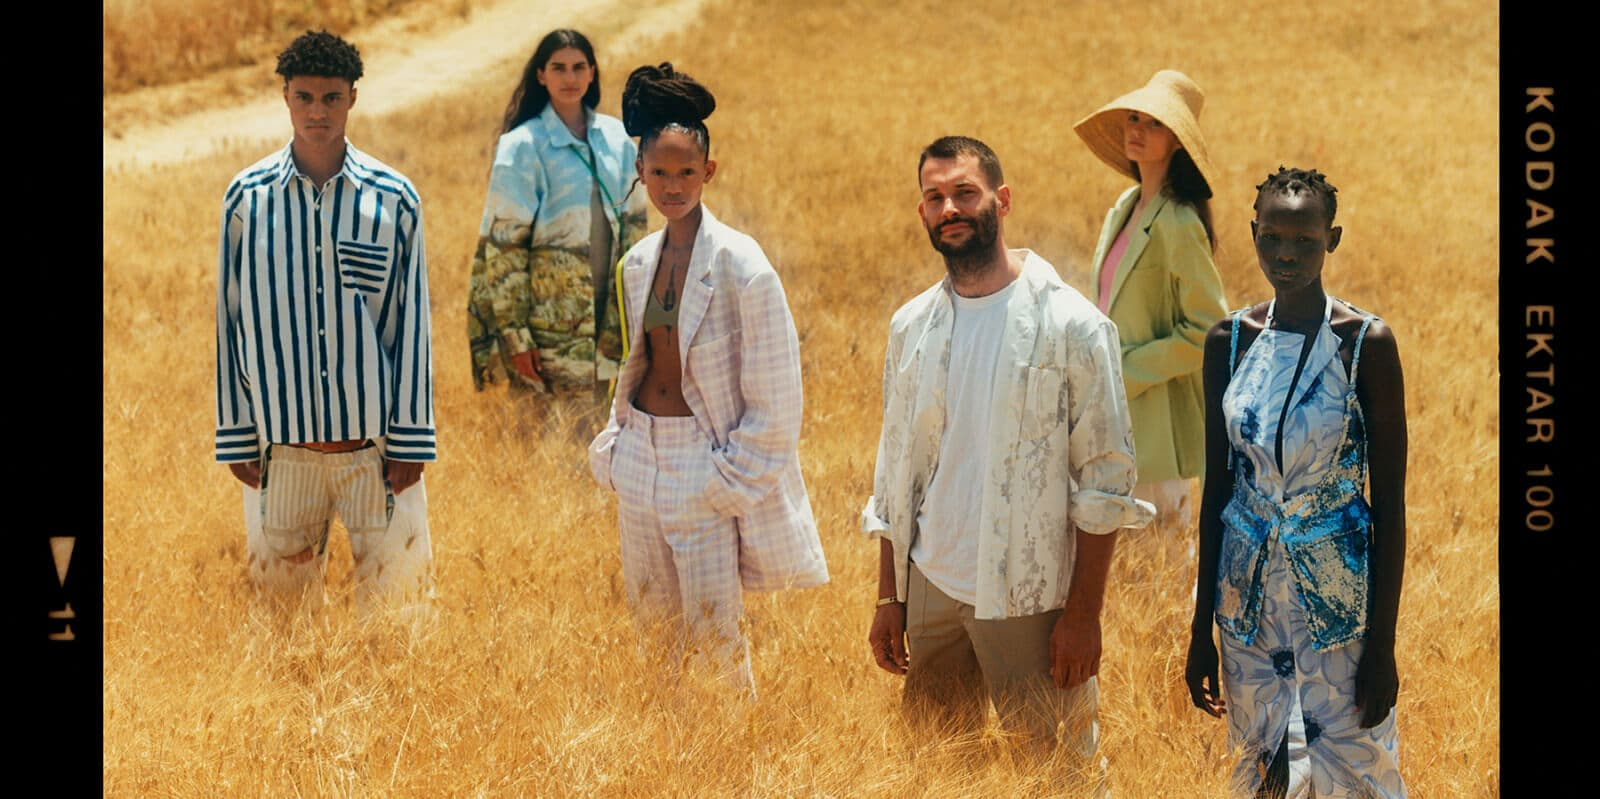 JACQUEMUS SS20 BY THEO GUELTZ